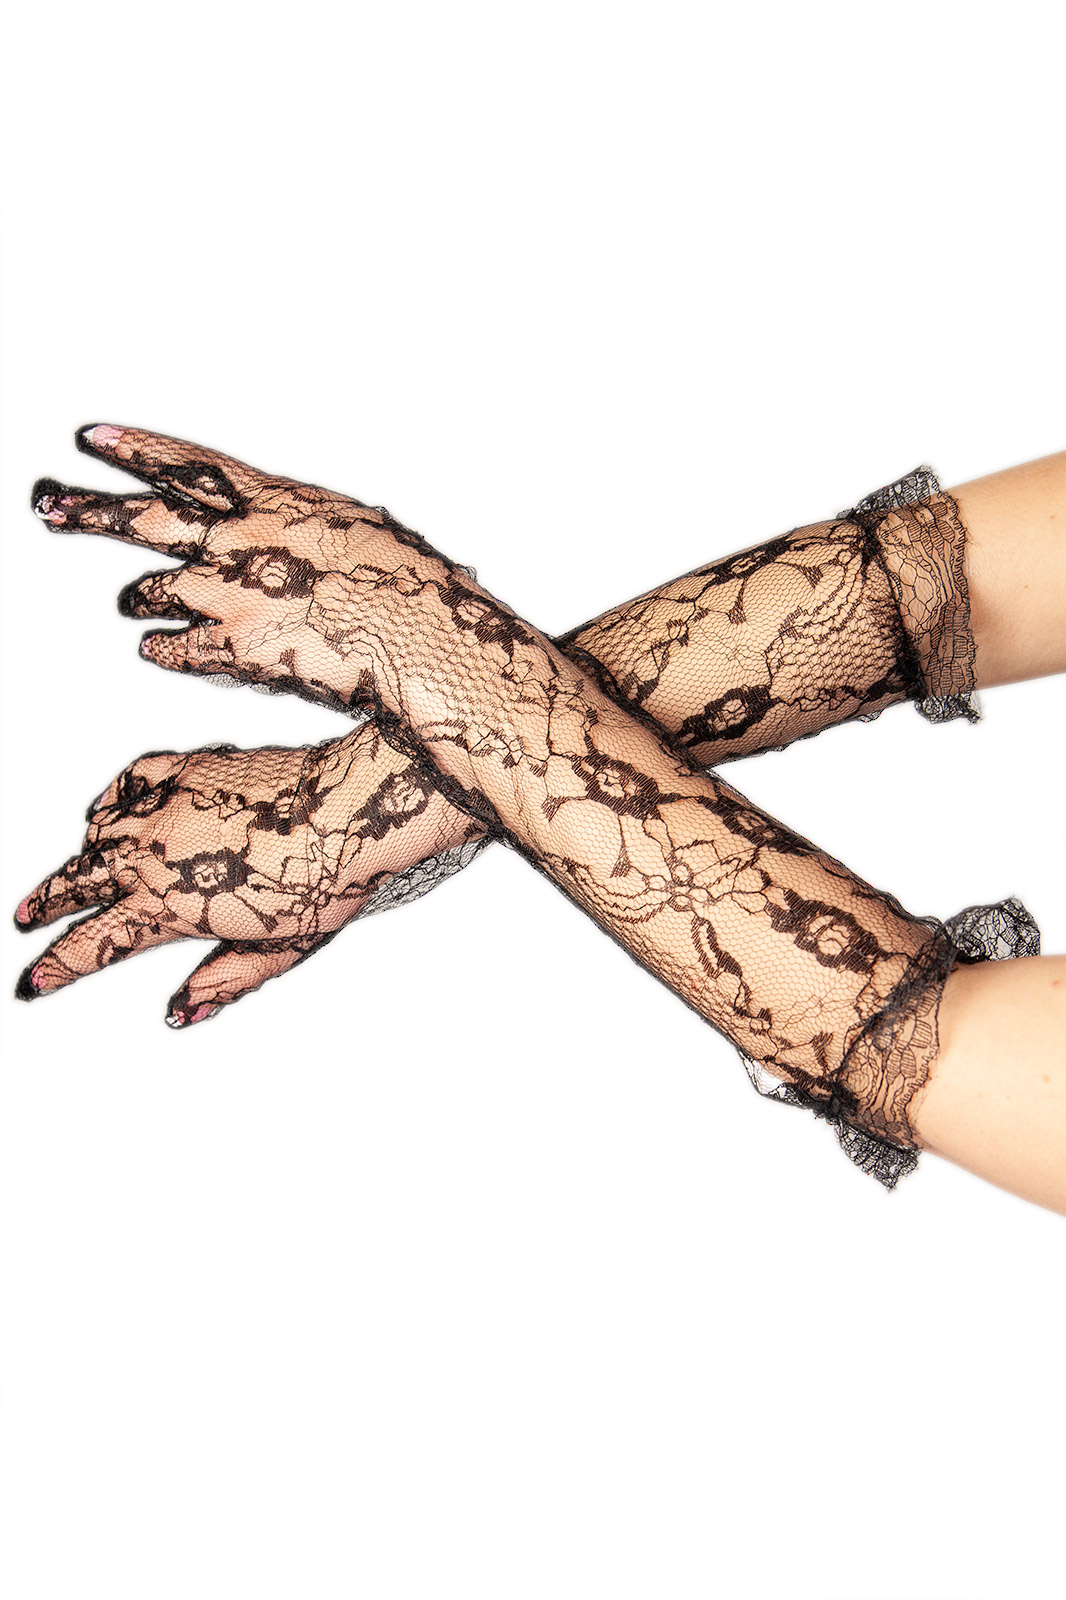 Lace Long Gloves Black